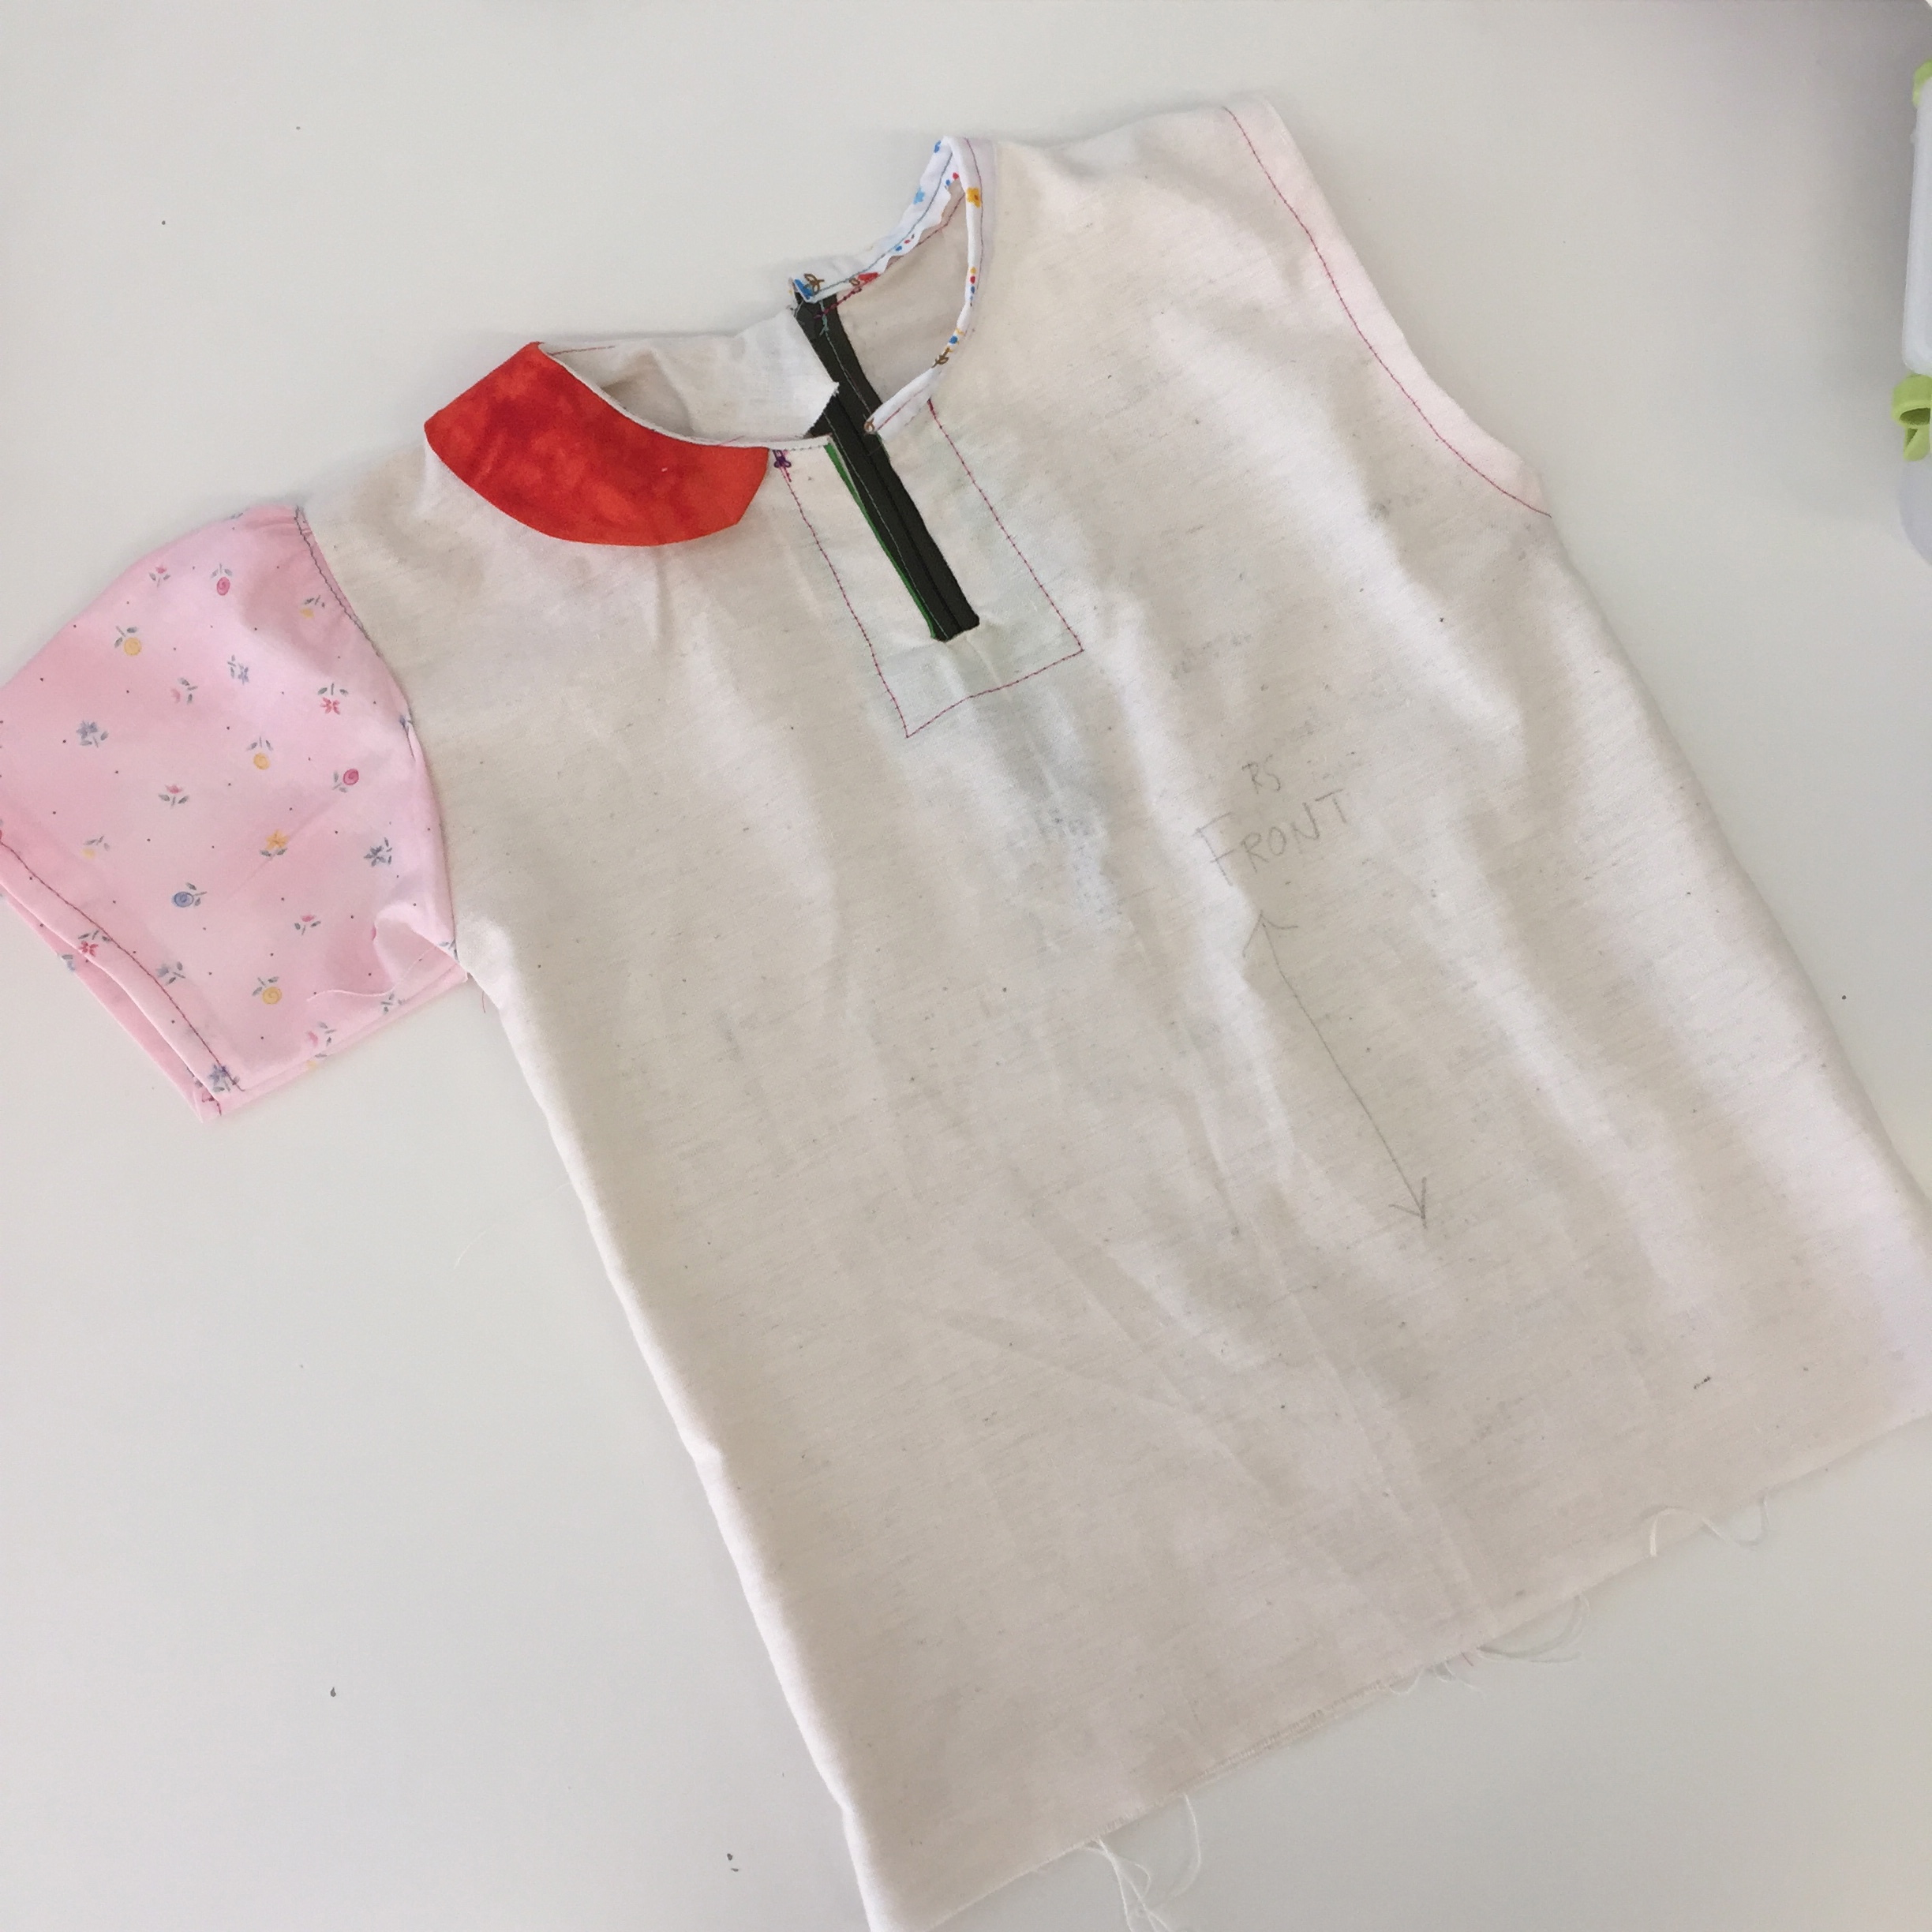 Dressmaking with Kids-Blouse/Top | Sew You Studio.com